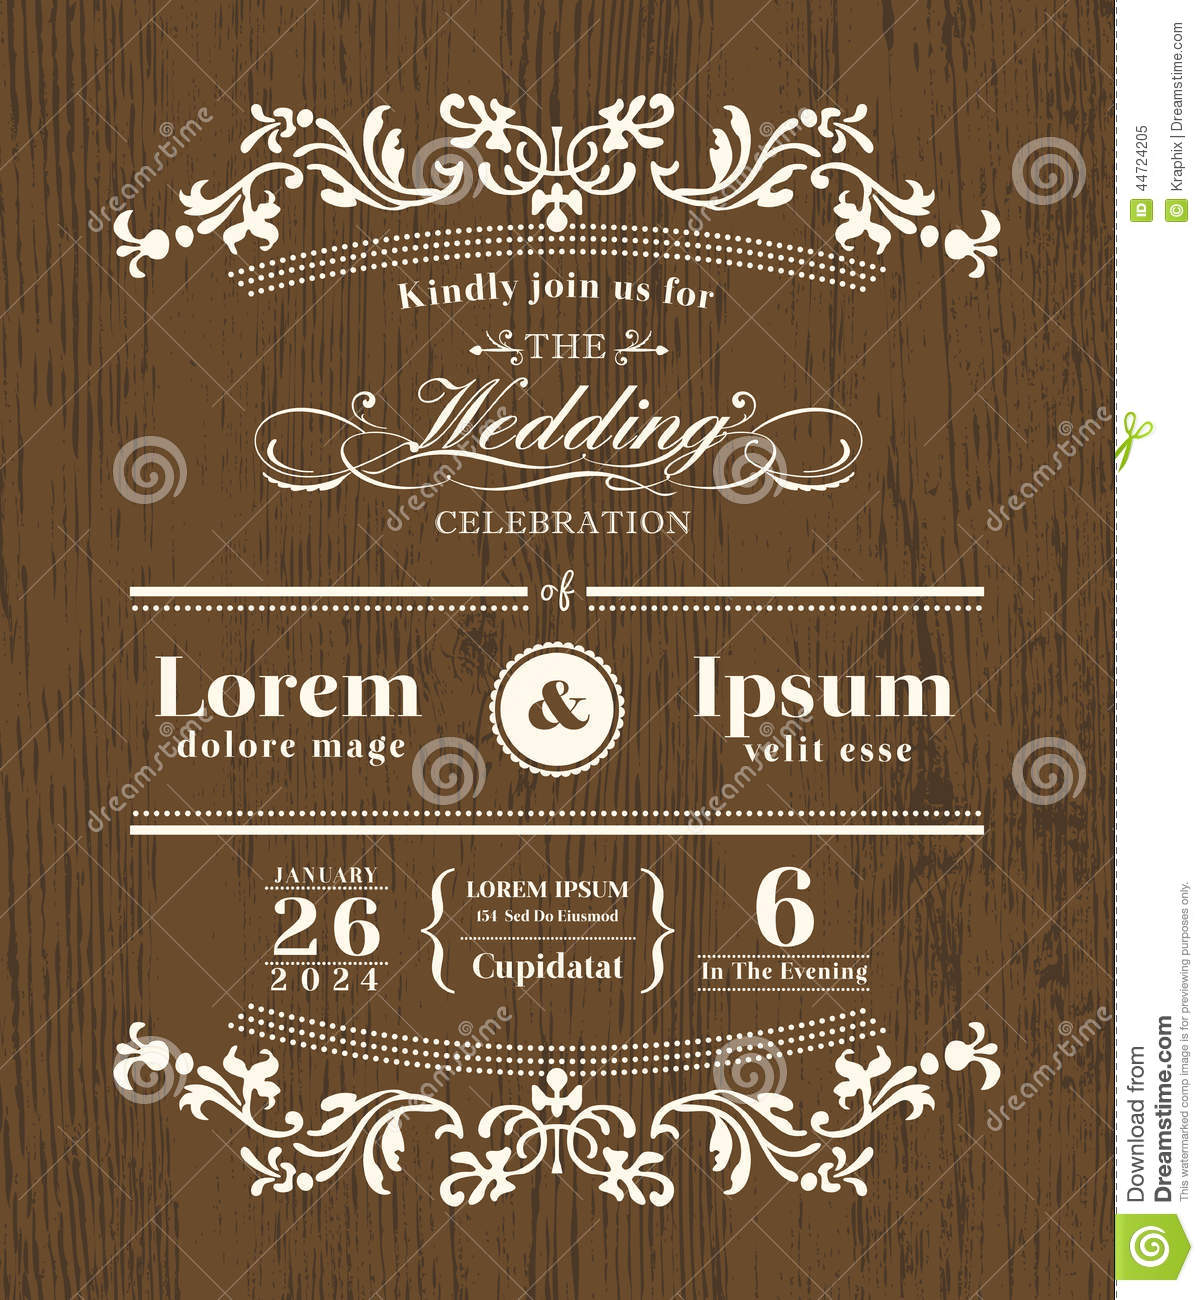 vintage typography wedding invitation design stock vector illustration of cute classic 44724205. Black Bedroom Furniture Sets. Home Design Ideas